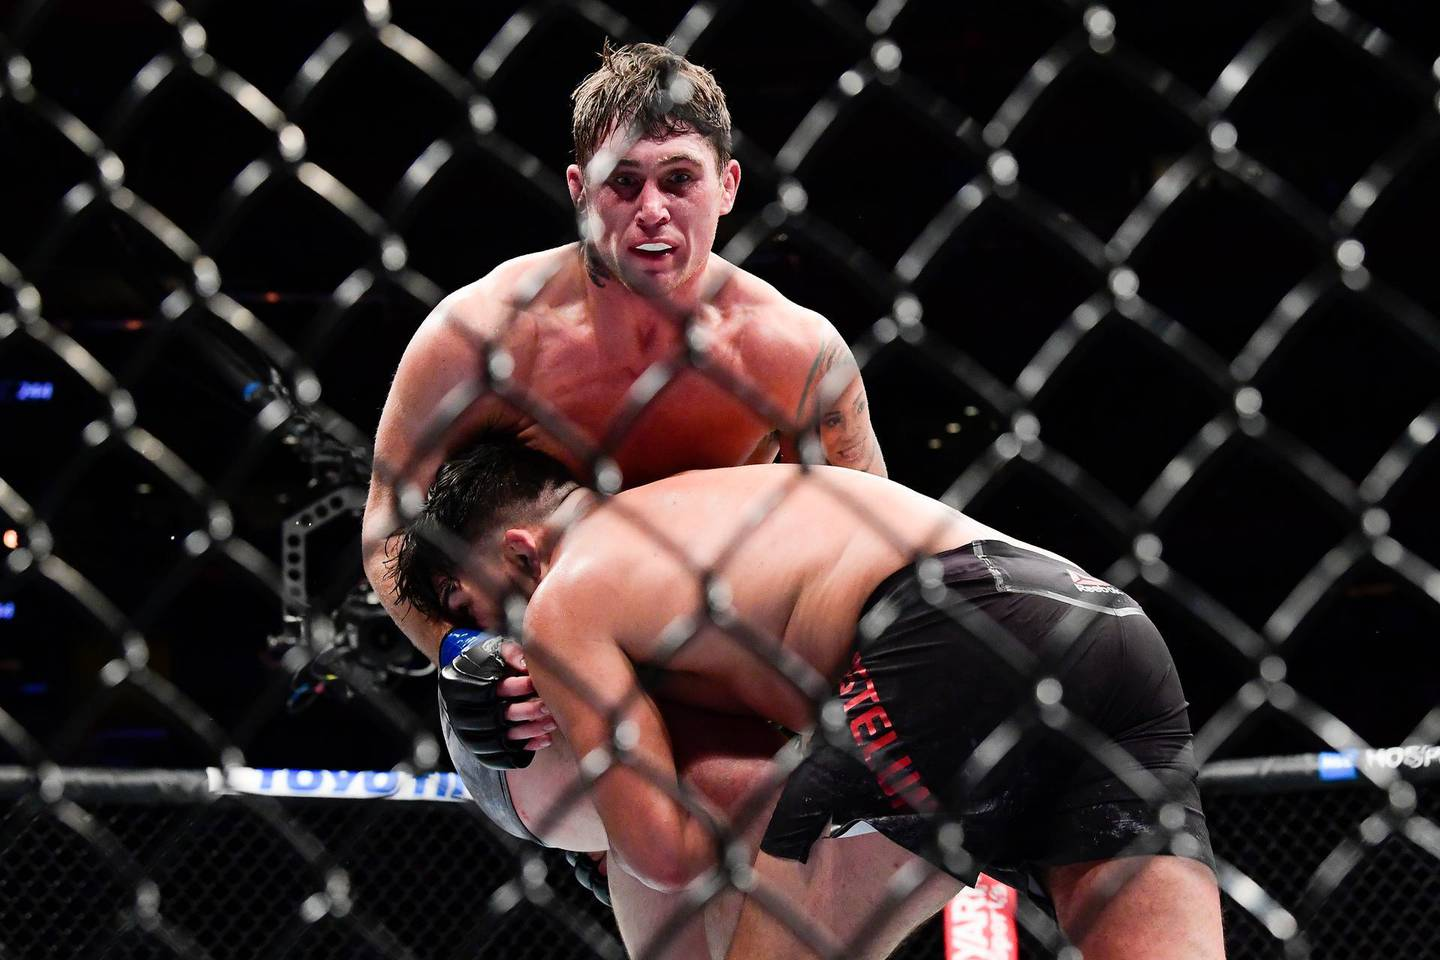 NEW YORK, NEW YORK - NOVEMBER 02: Kelvin Gastelum of the United States (R) fights against Darren Till of the United Kingdom in the Middleweight bout during UFC 244 at Madison Square Garden on November 02, 2019 in New York City.   Steven Ryan/Getty Images/AFP